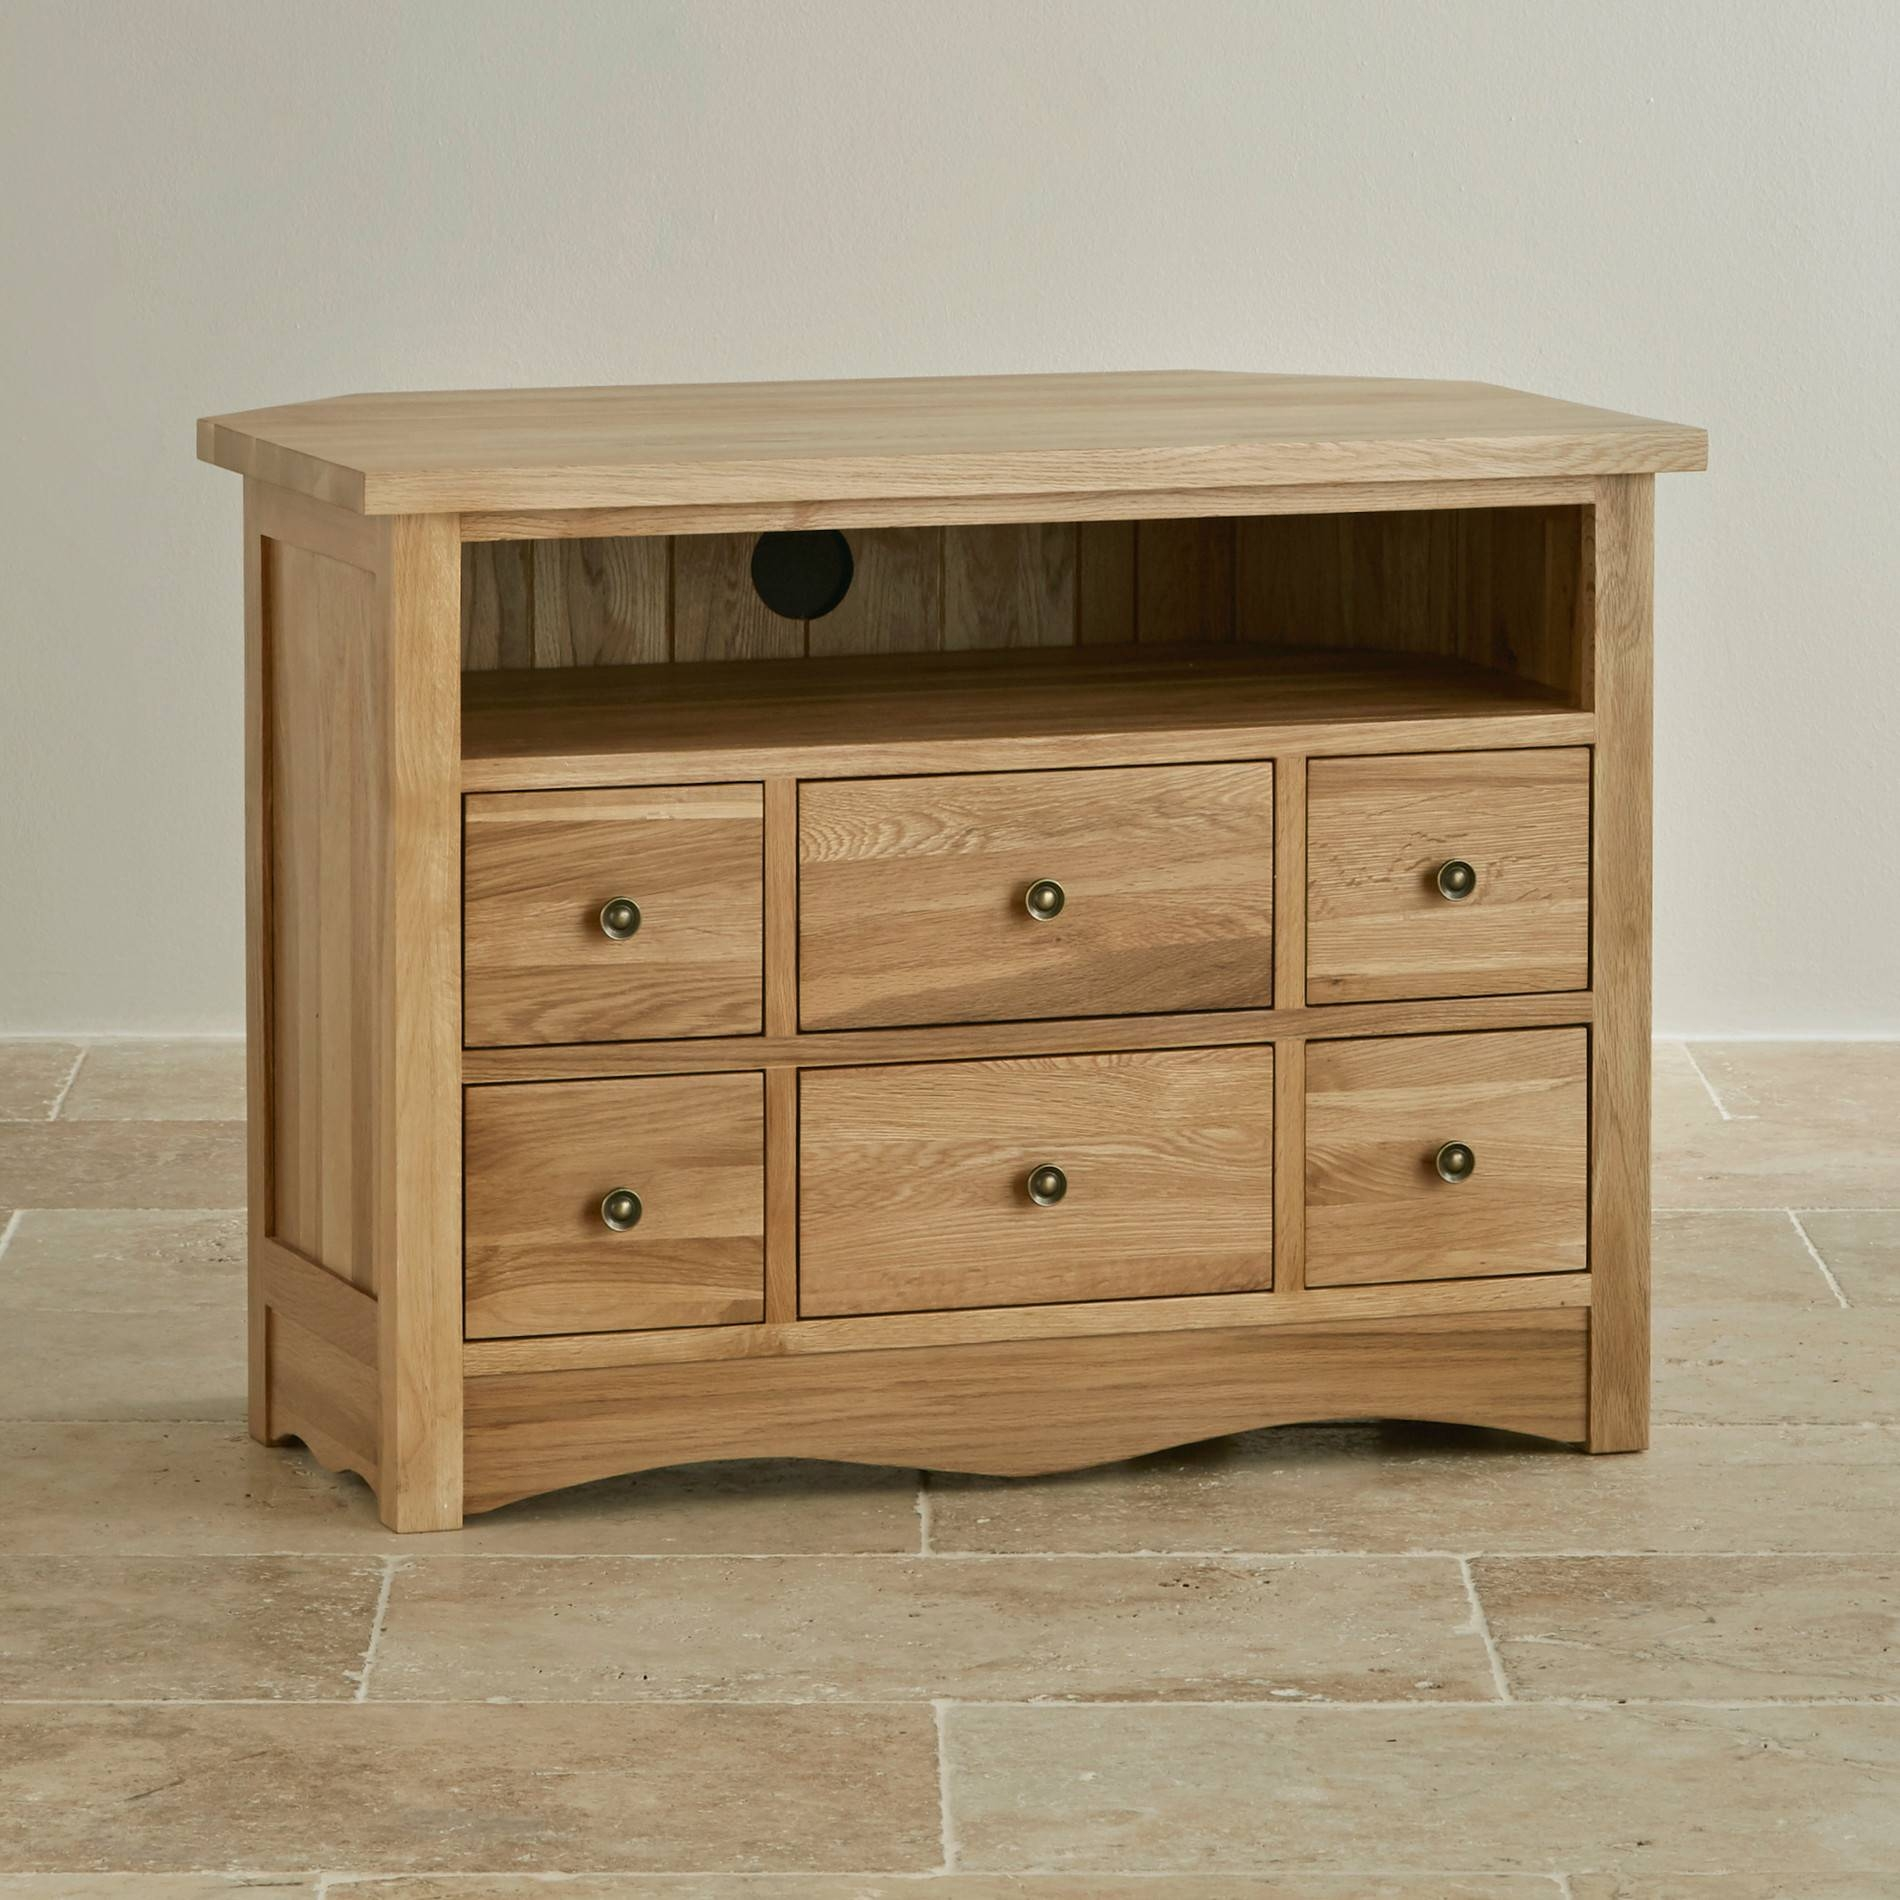 Cairo Corner Tv Cabinet In Natural Solid Oak | Oak Furniture Land with regard to Corner Wooden Tv Cabinets (Image 2 of 15)